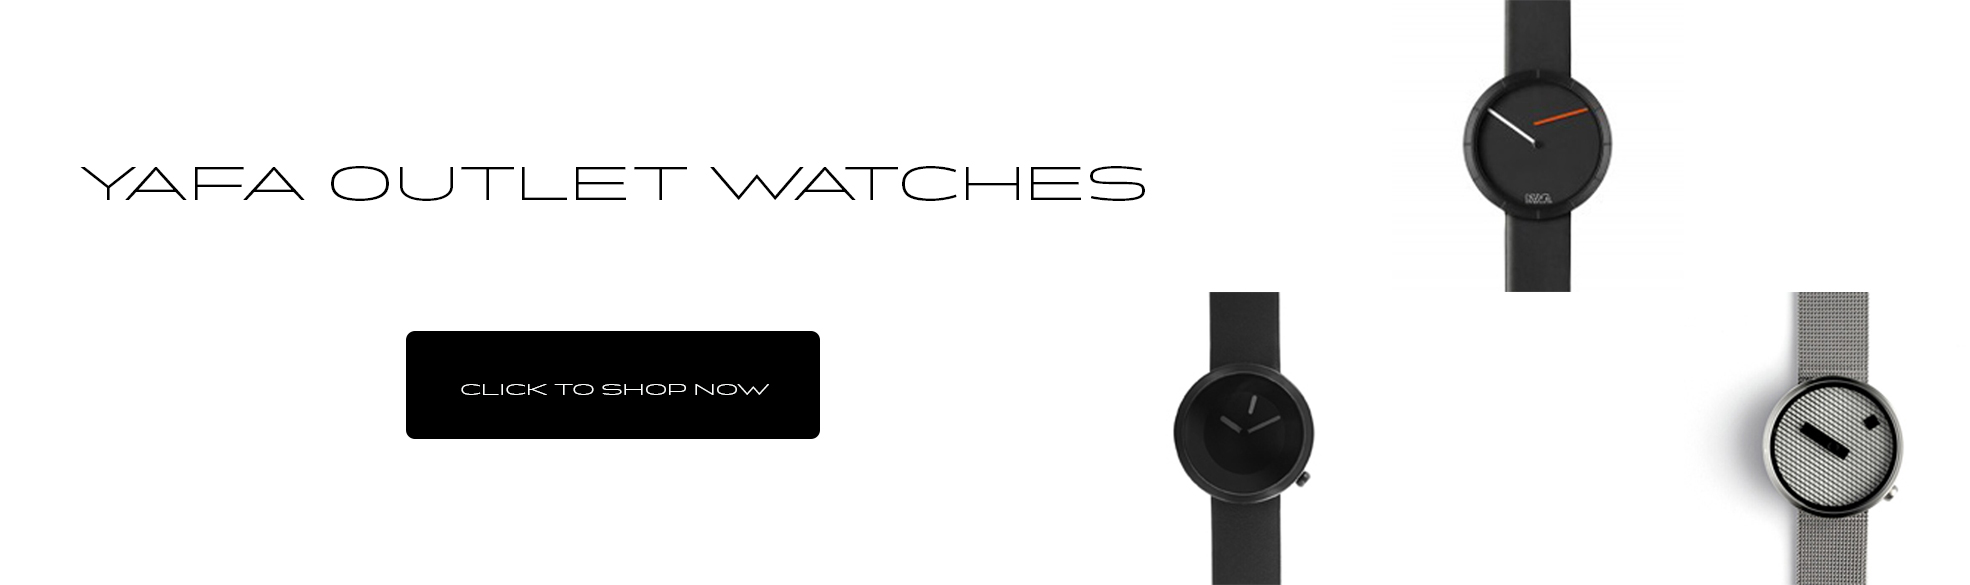 yafa-watches-banner.jpg